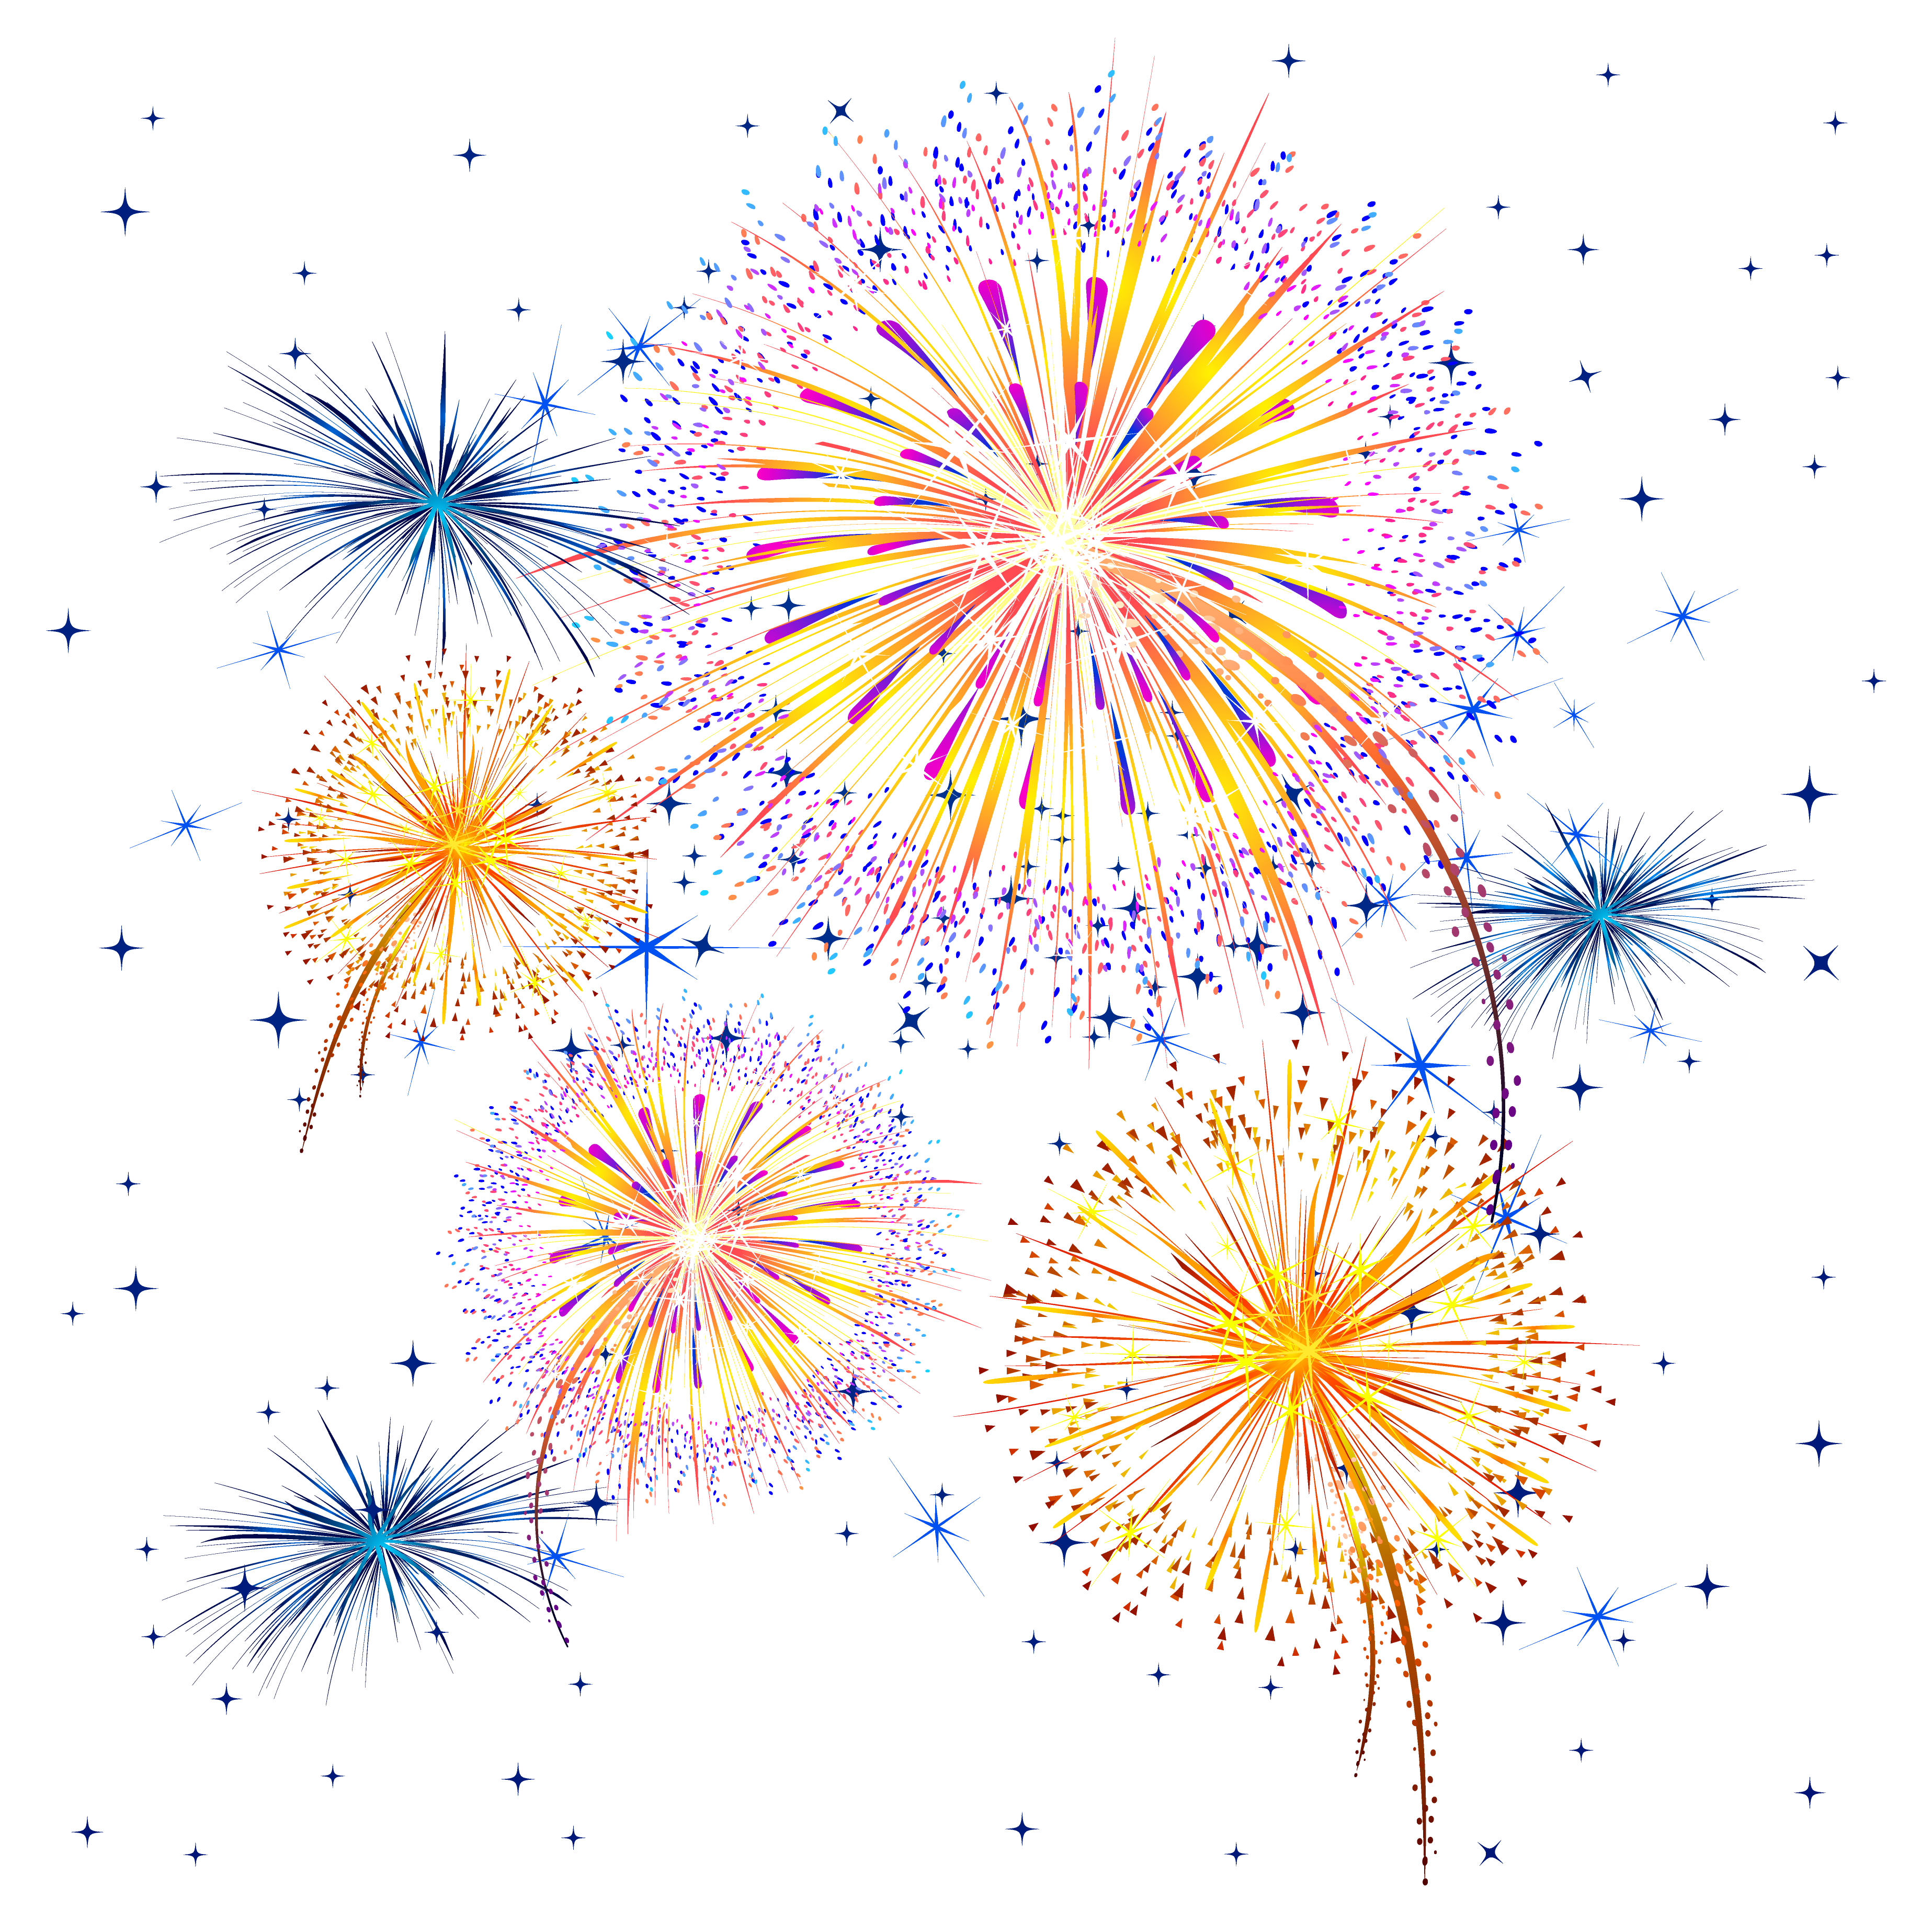 Clipart fireworks wallpaper. Firework show png image